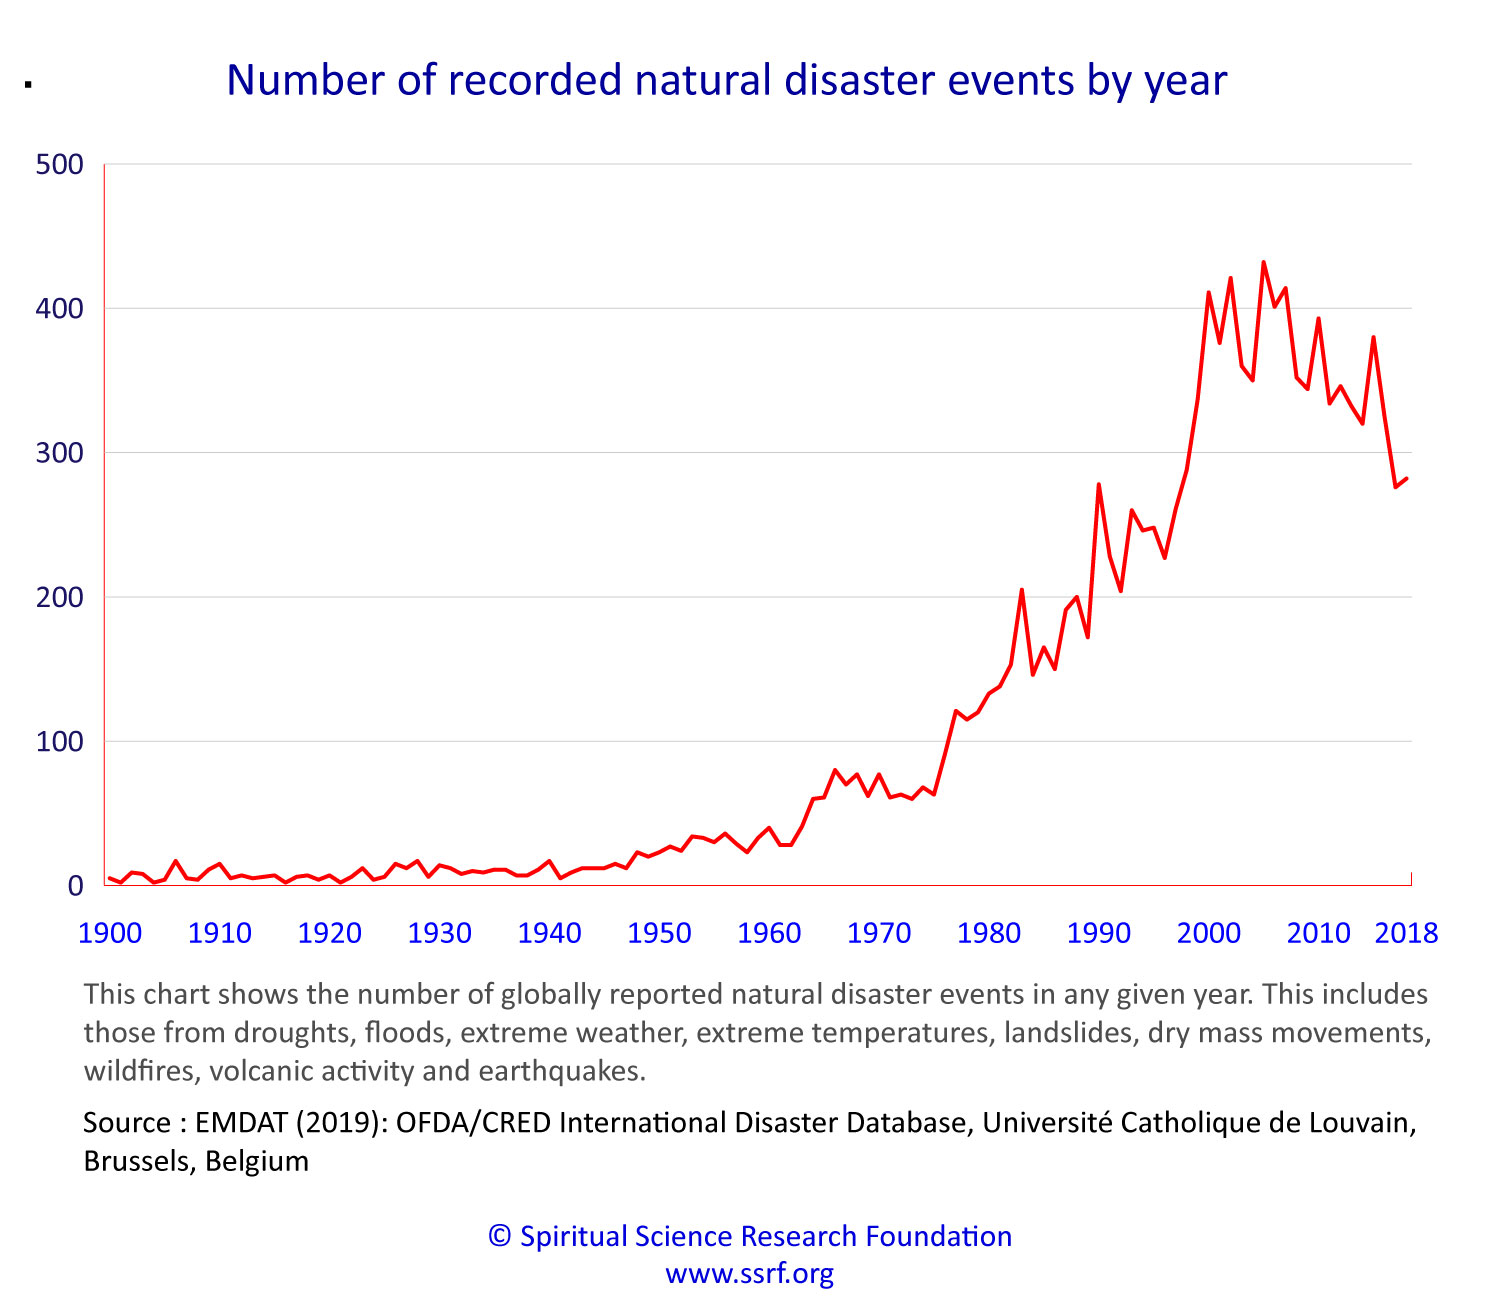 Increasing number of natural disasters